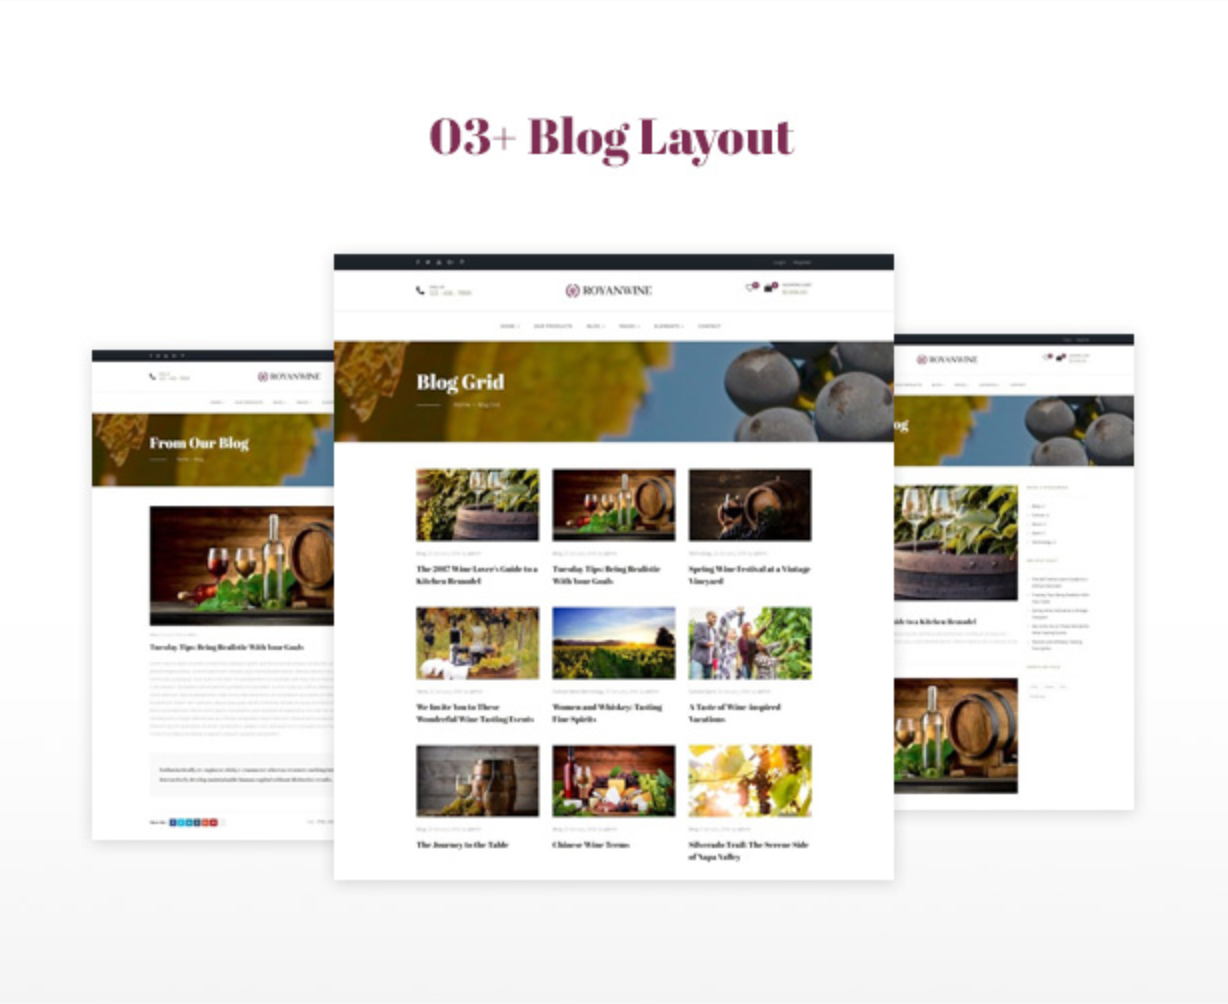 Royanwine Stunning Blog Layout for Vinyard, Winery, Wine Makers, Dairy Farm